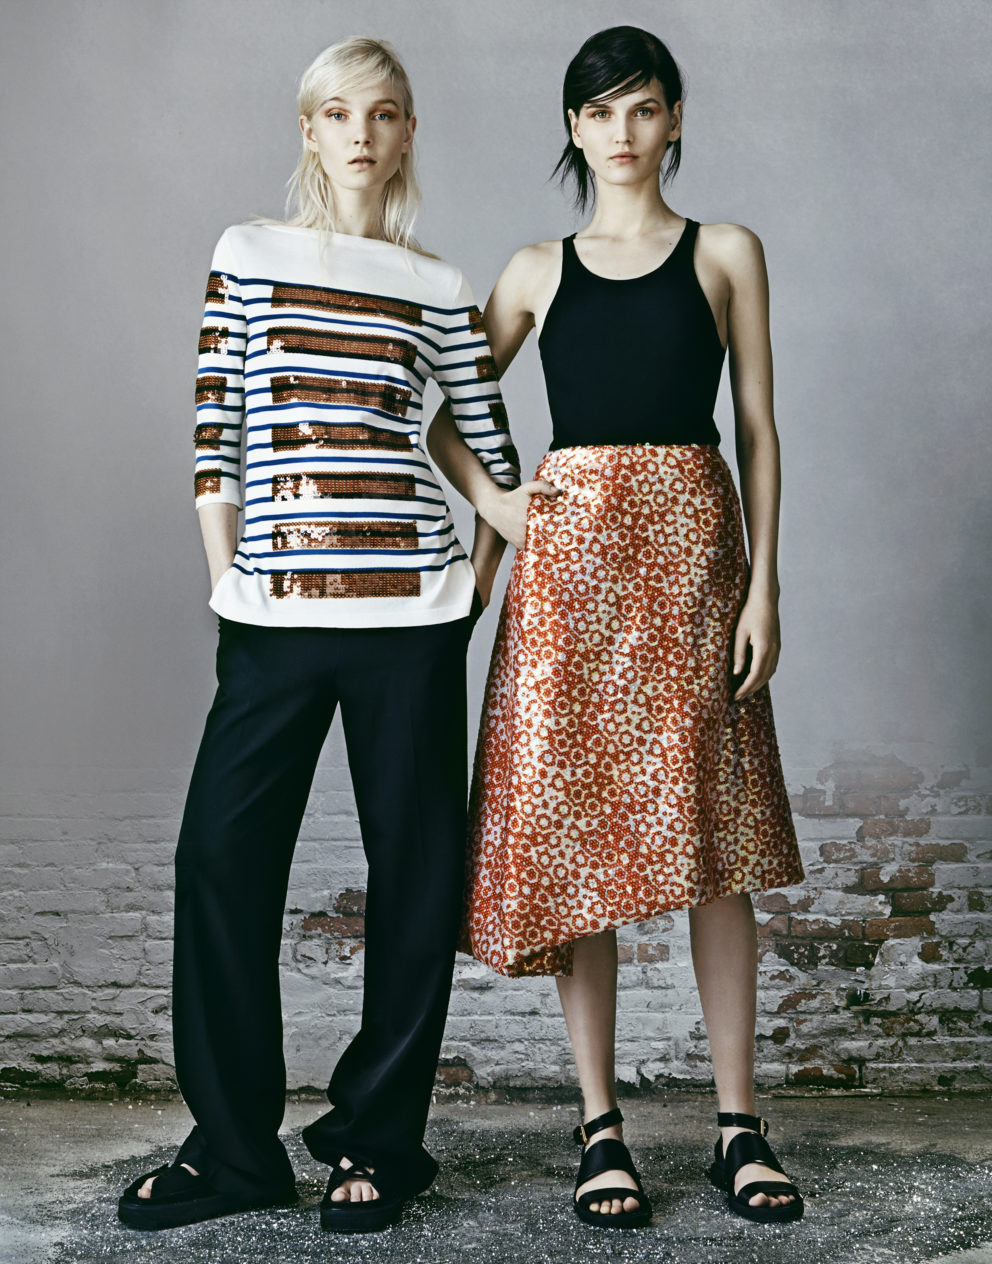 140129 Vogue Sequin Twins Christian Hogstedt 06